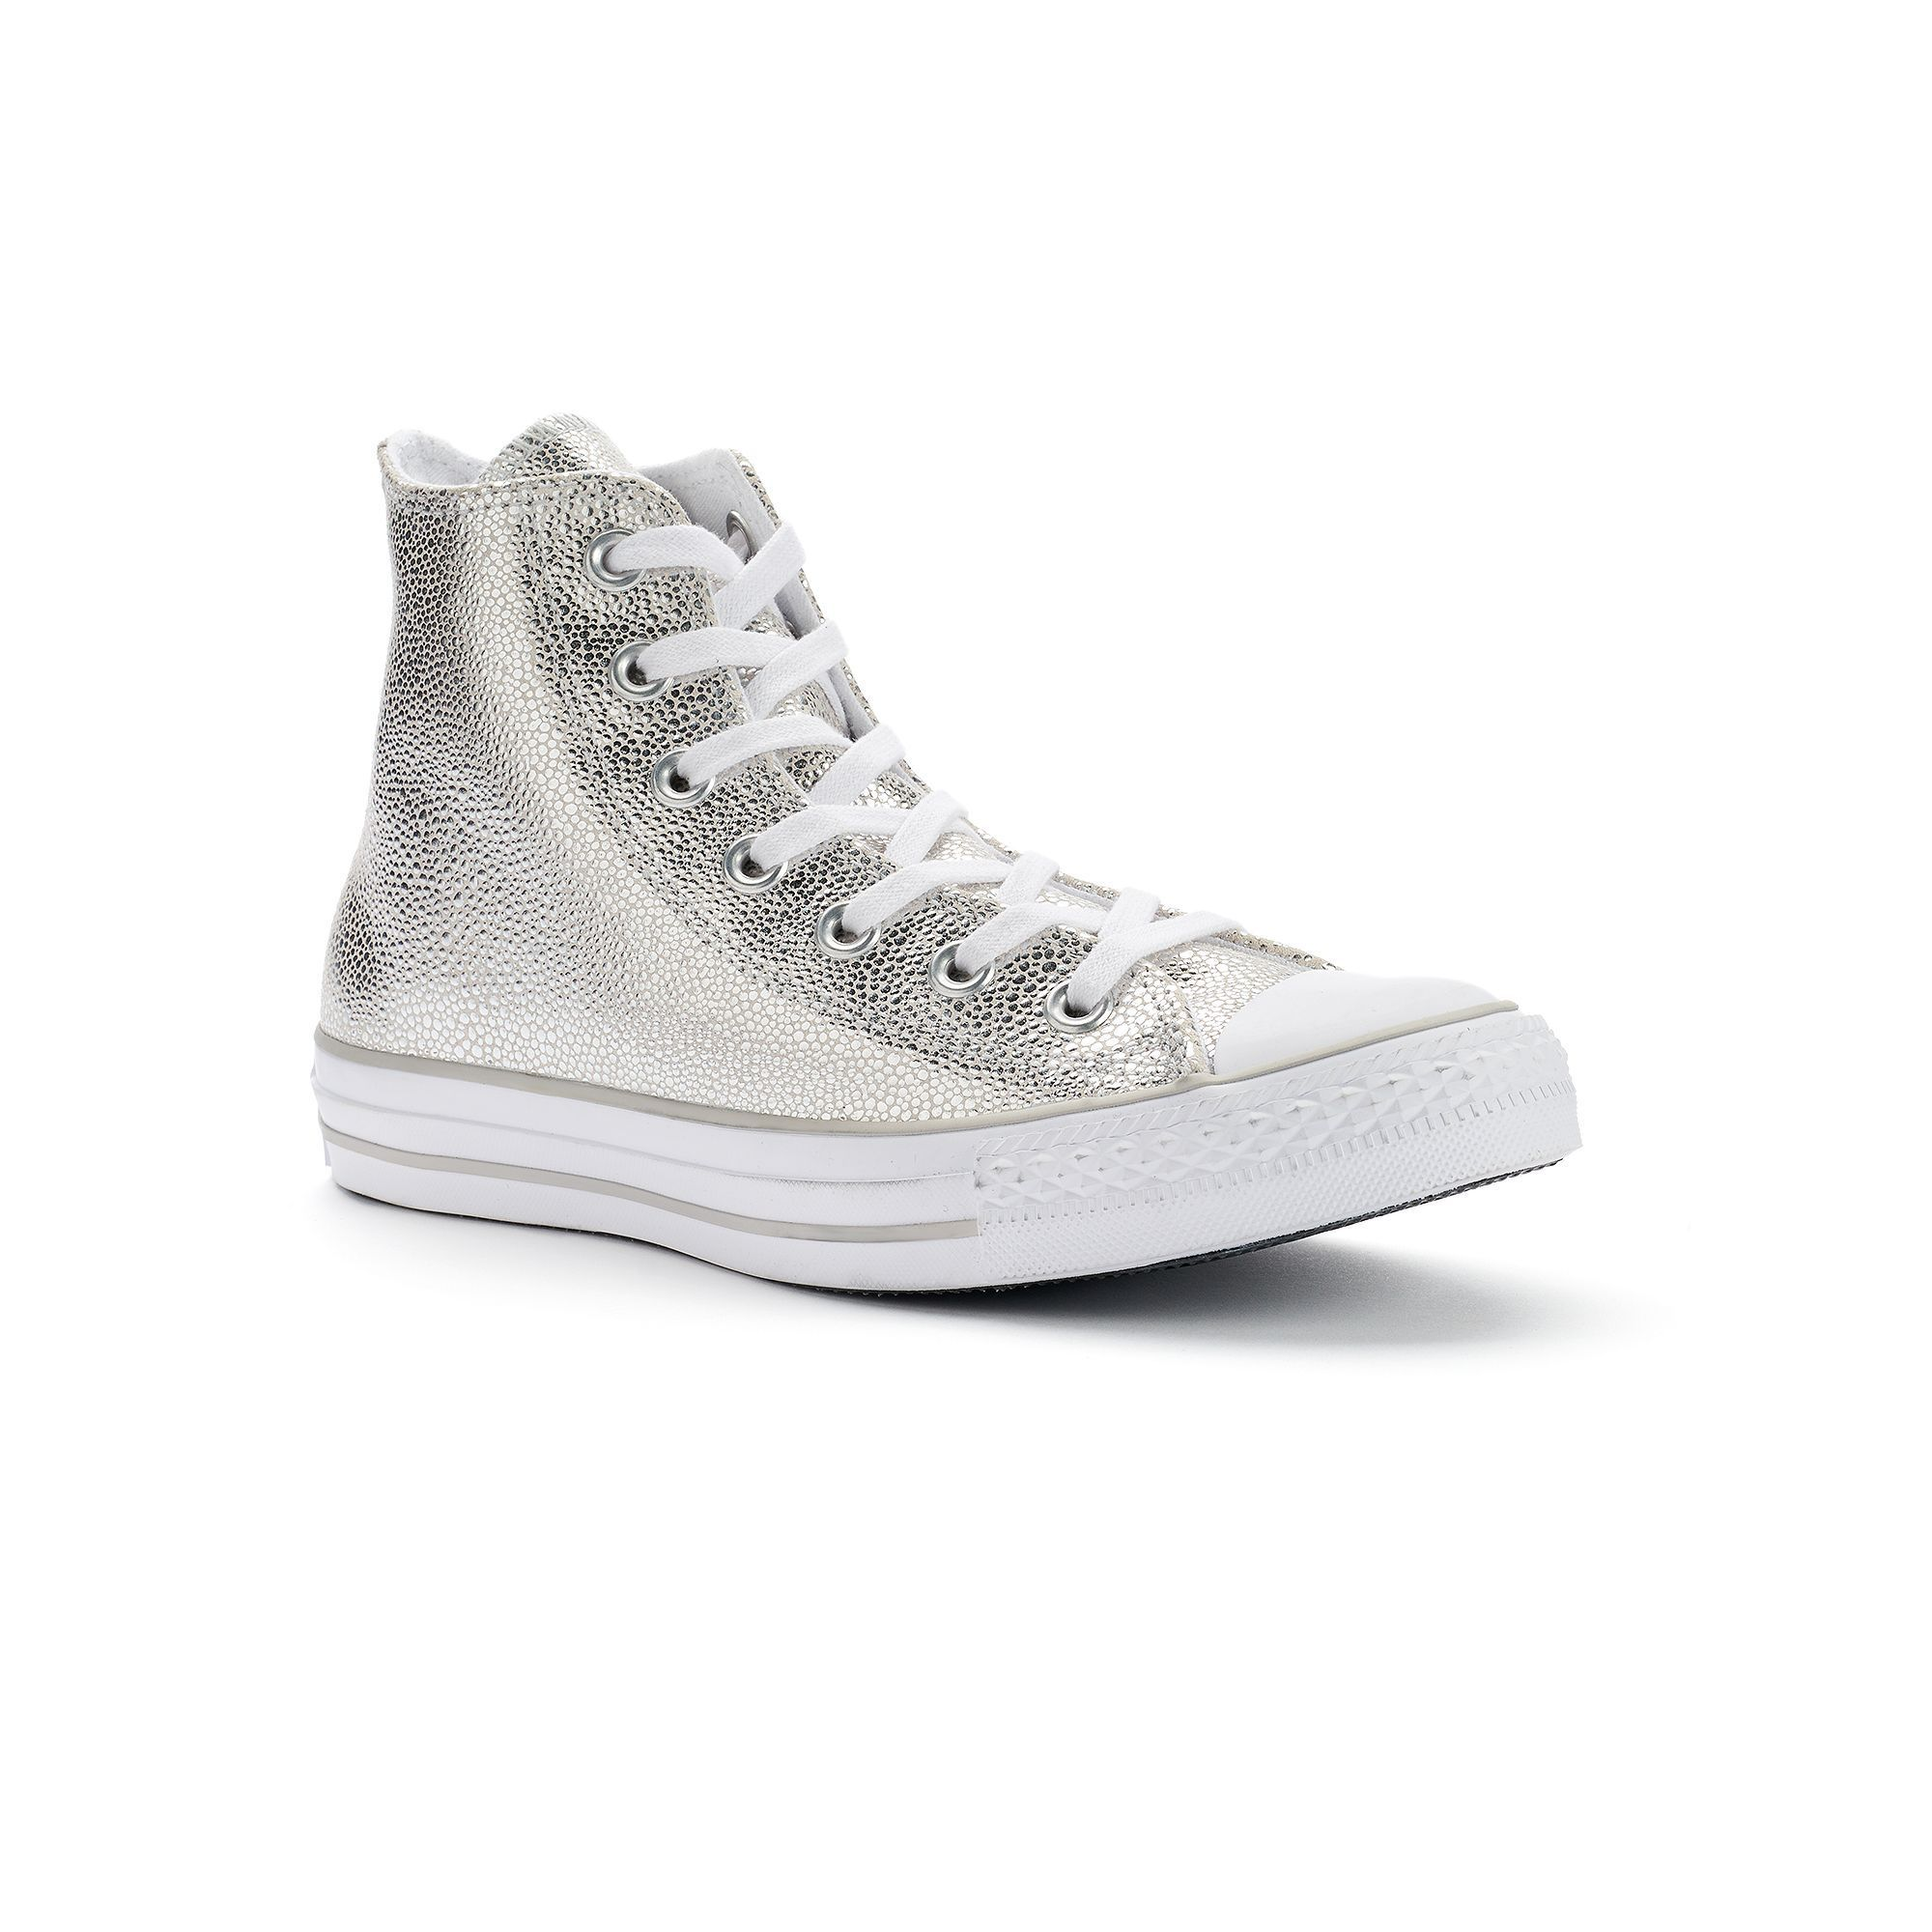 a97768d57f53 Women s Converse Chuck Taylor All Star Stingray Metallic High-Top Sneakers